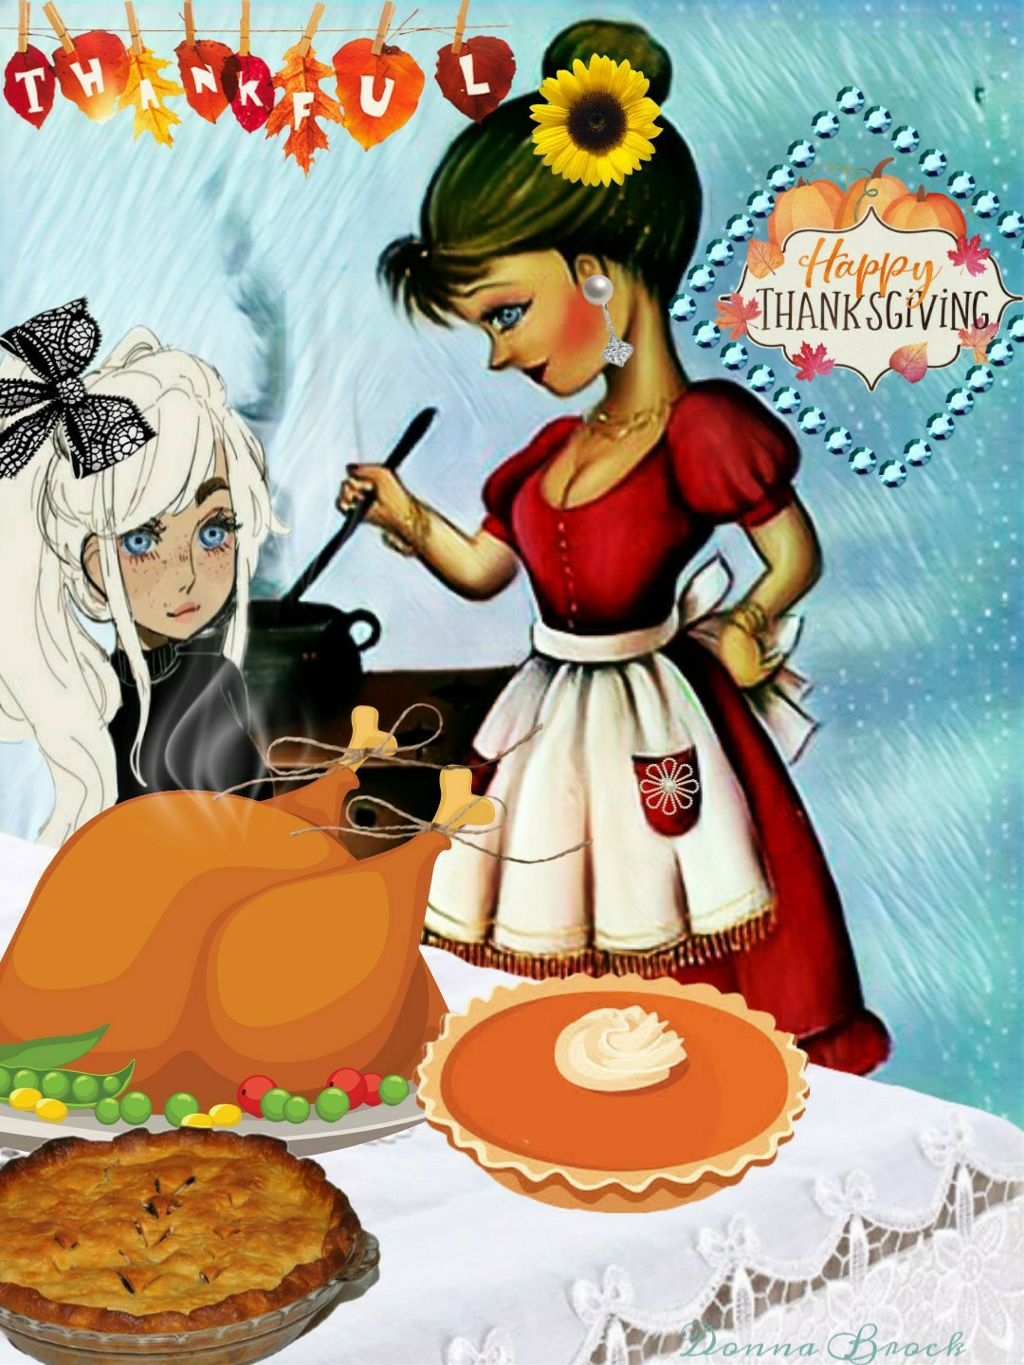 BE THANKFUL ... THANKSGIVING. CHALLENGE ..   #thanksgiving #freetoedit. #woman #girl #cooking #dinner  #fcthanksgiving